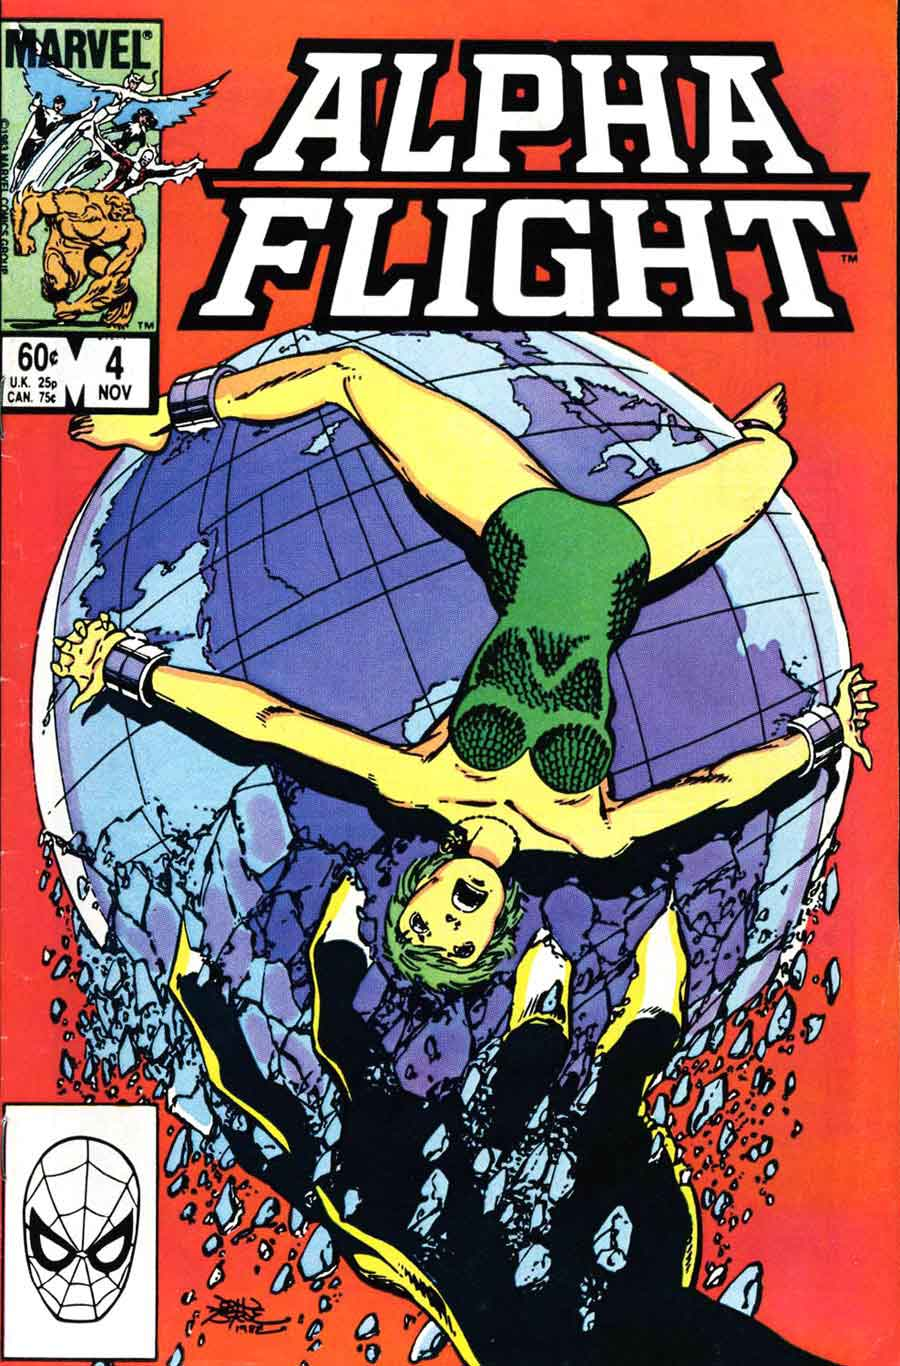 Alpha Flight v1 #4 marvel comic book cover art by John Byrne